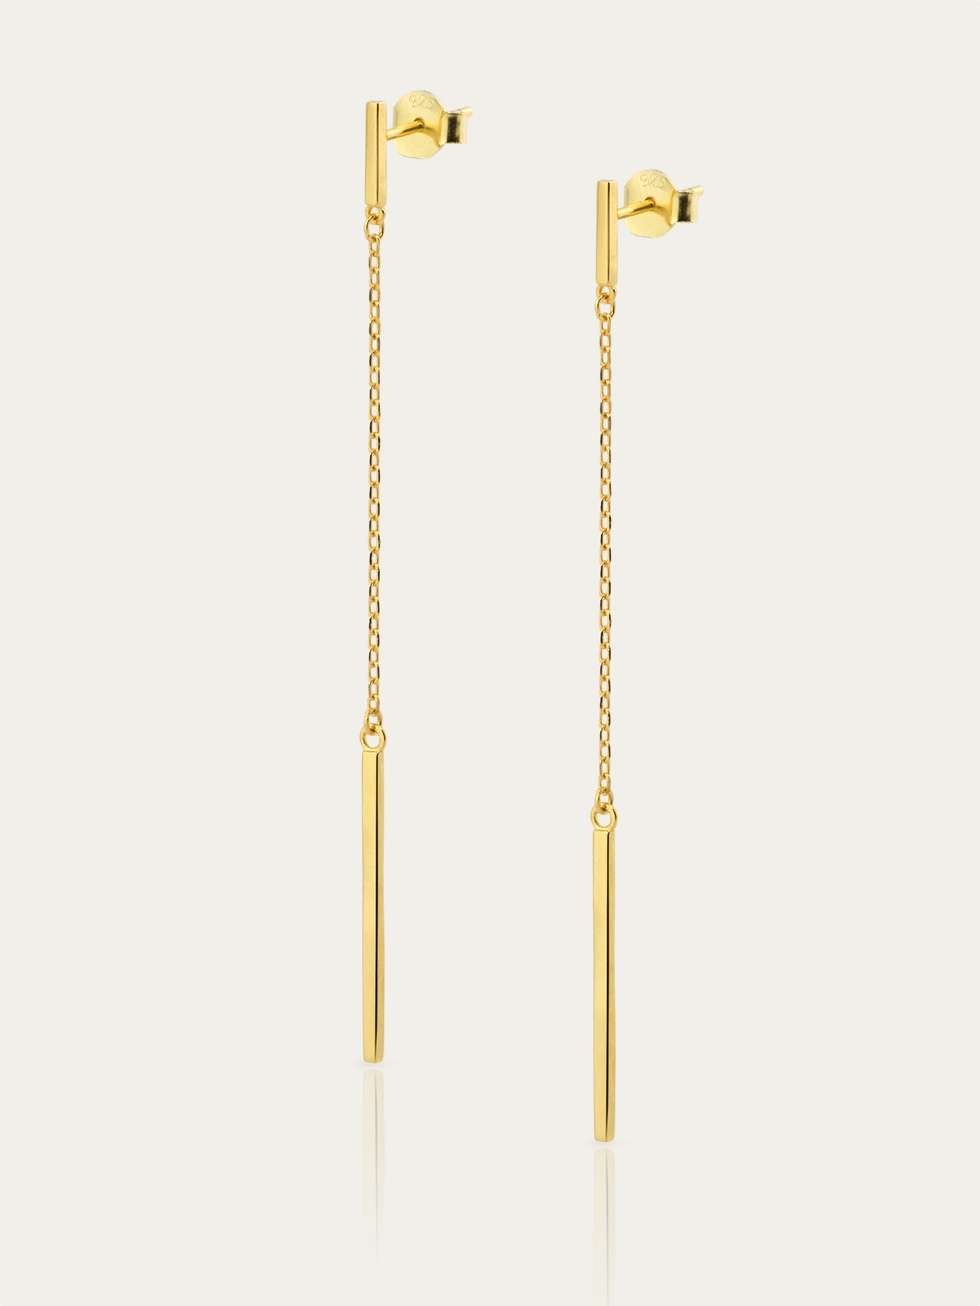 LINE CHAIN gold earrings